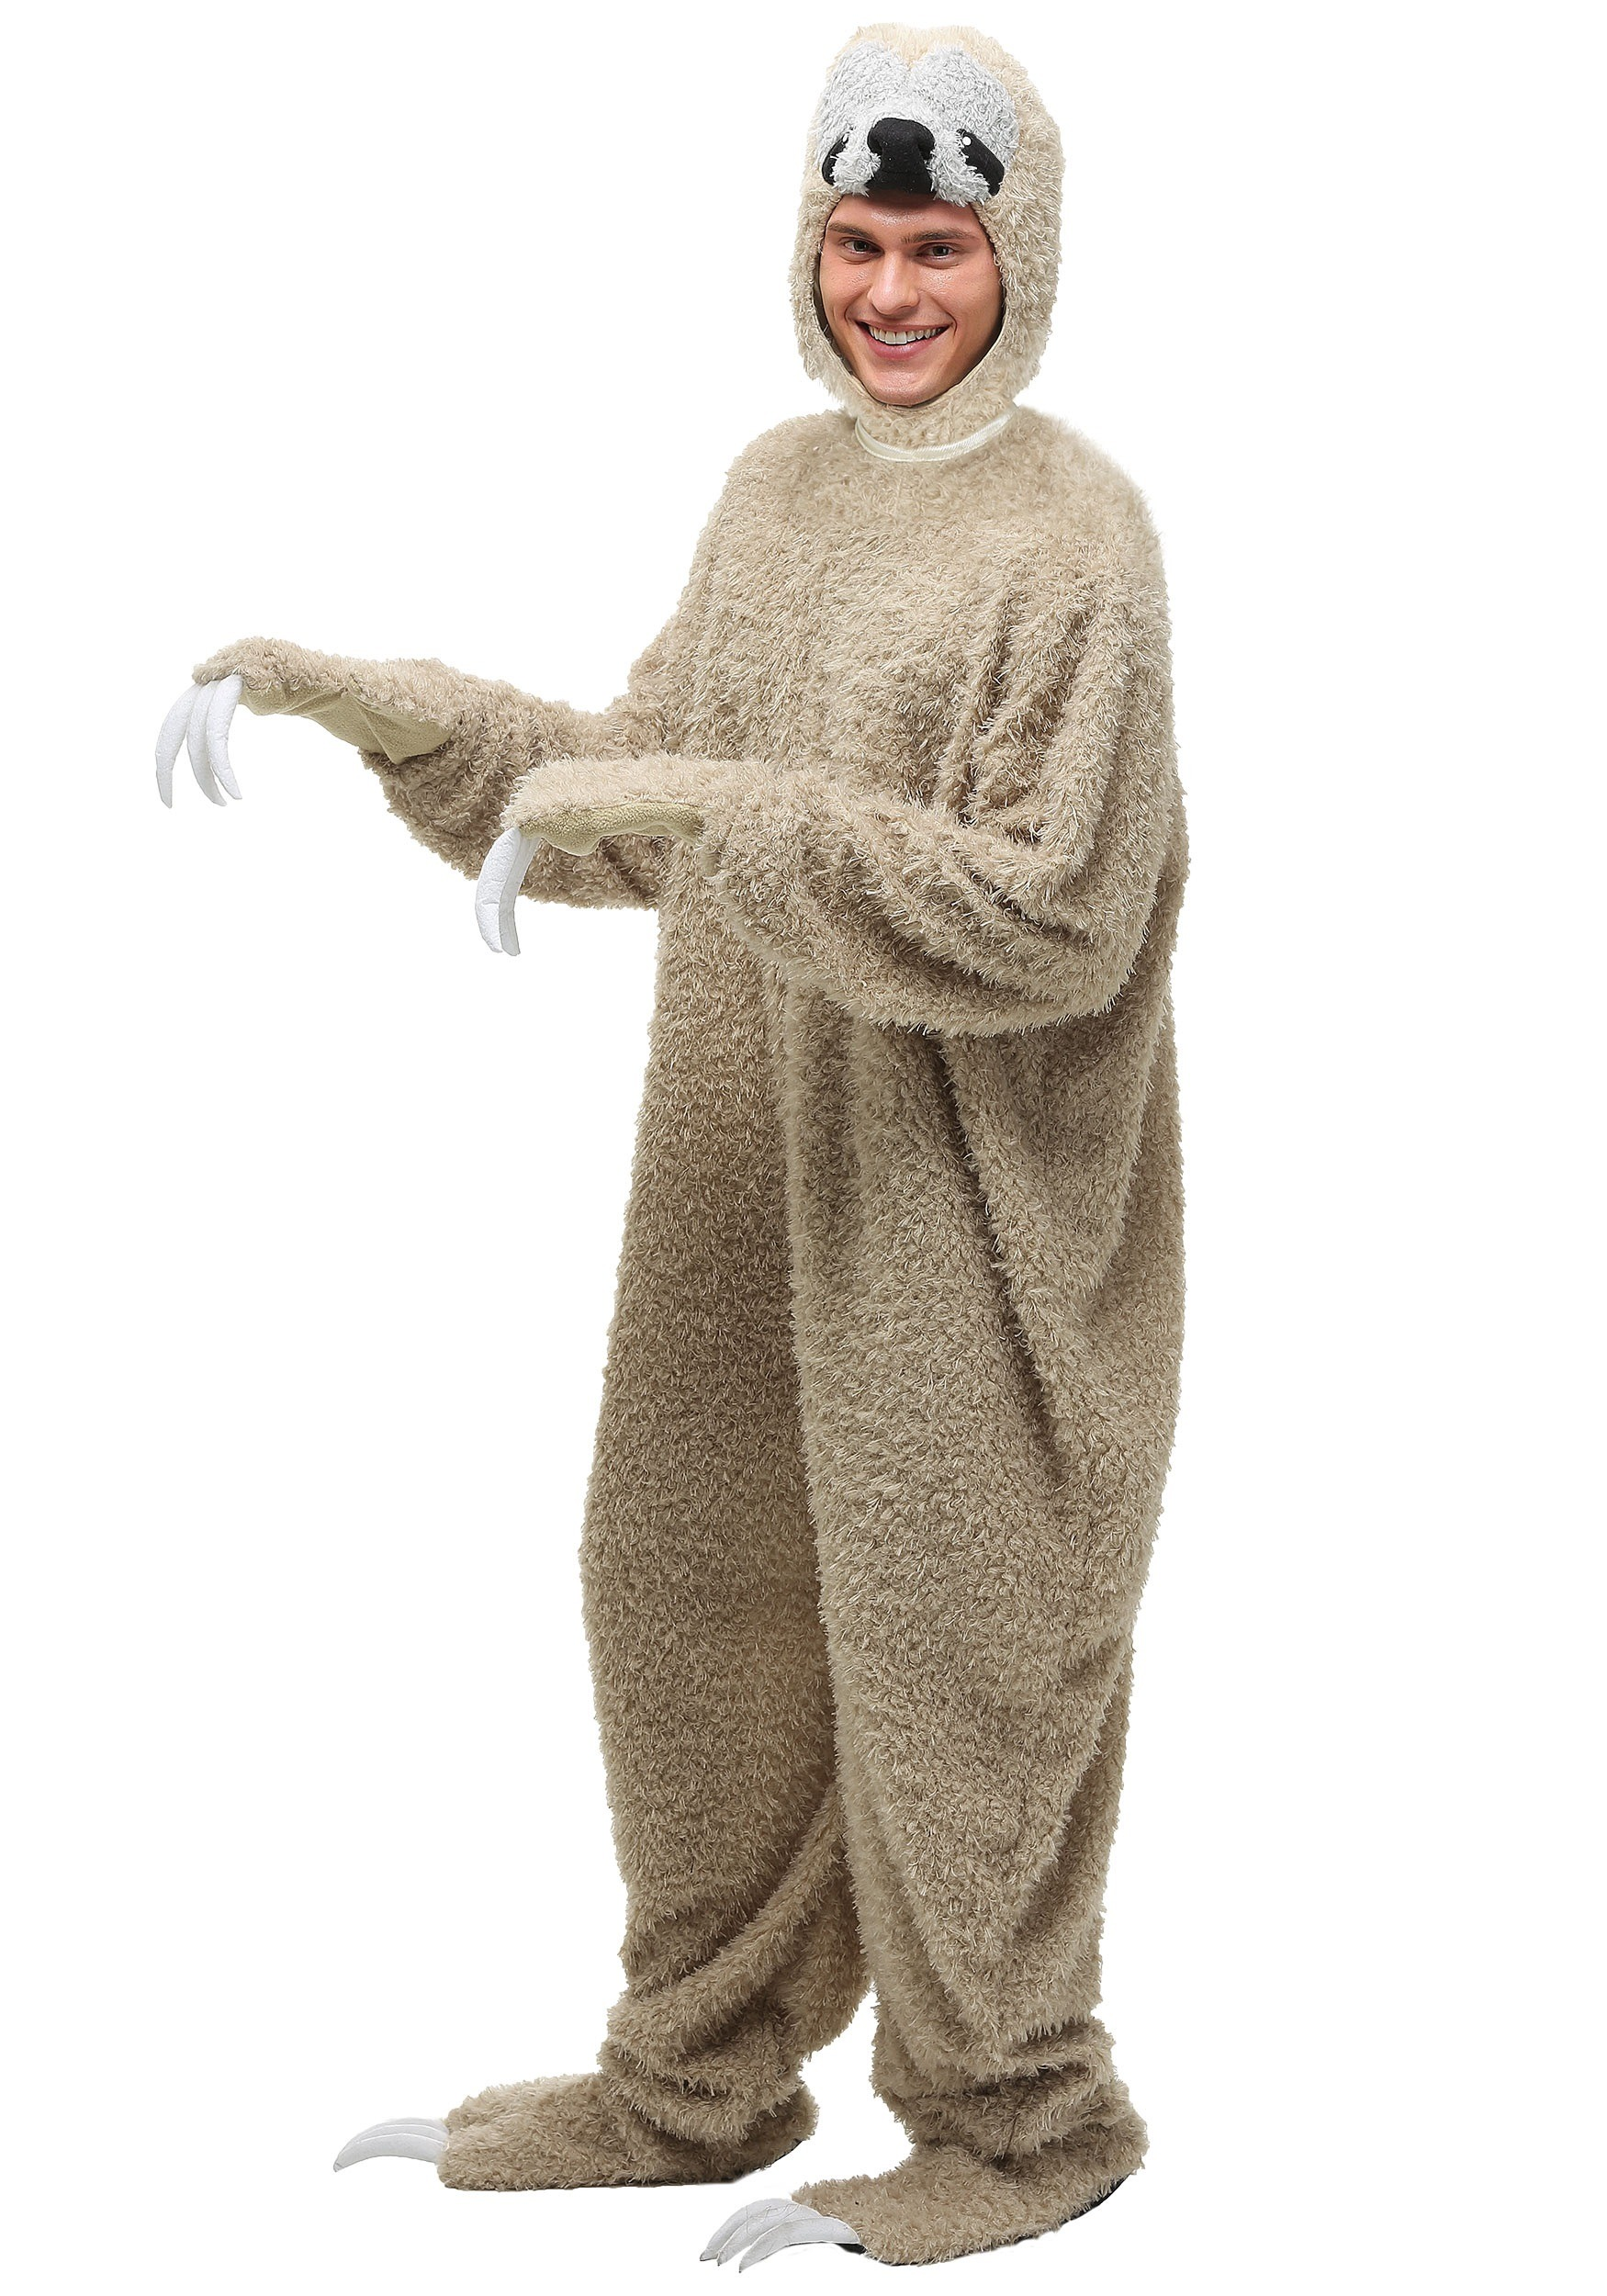 Outdoor halloween decorations for trees - Adult Sloth Costume